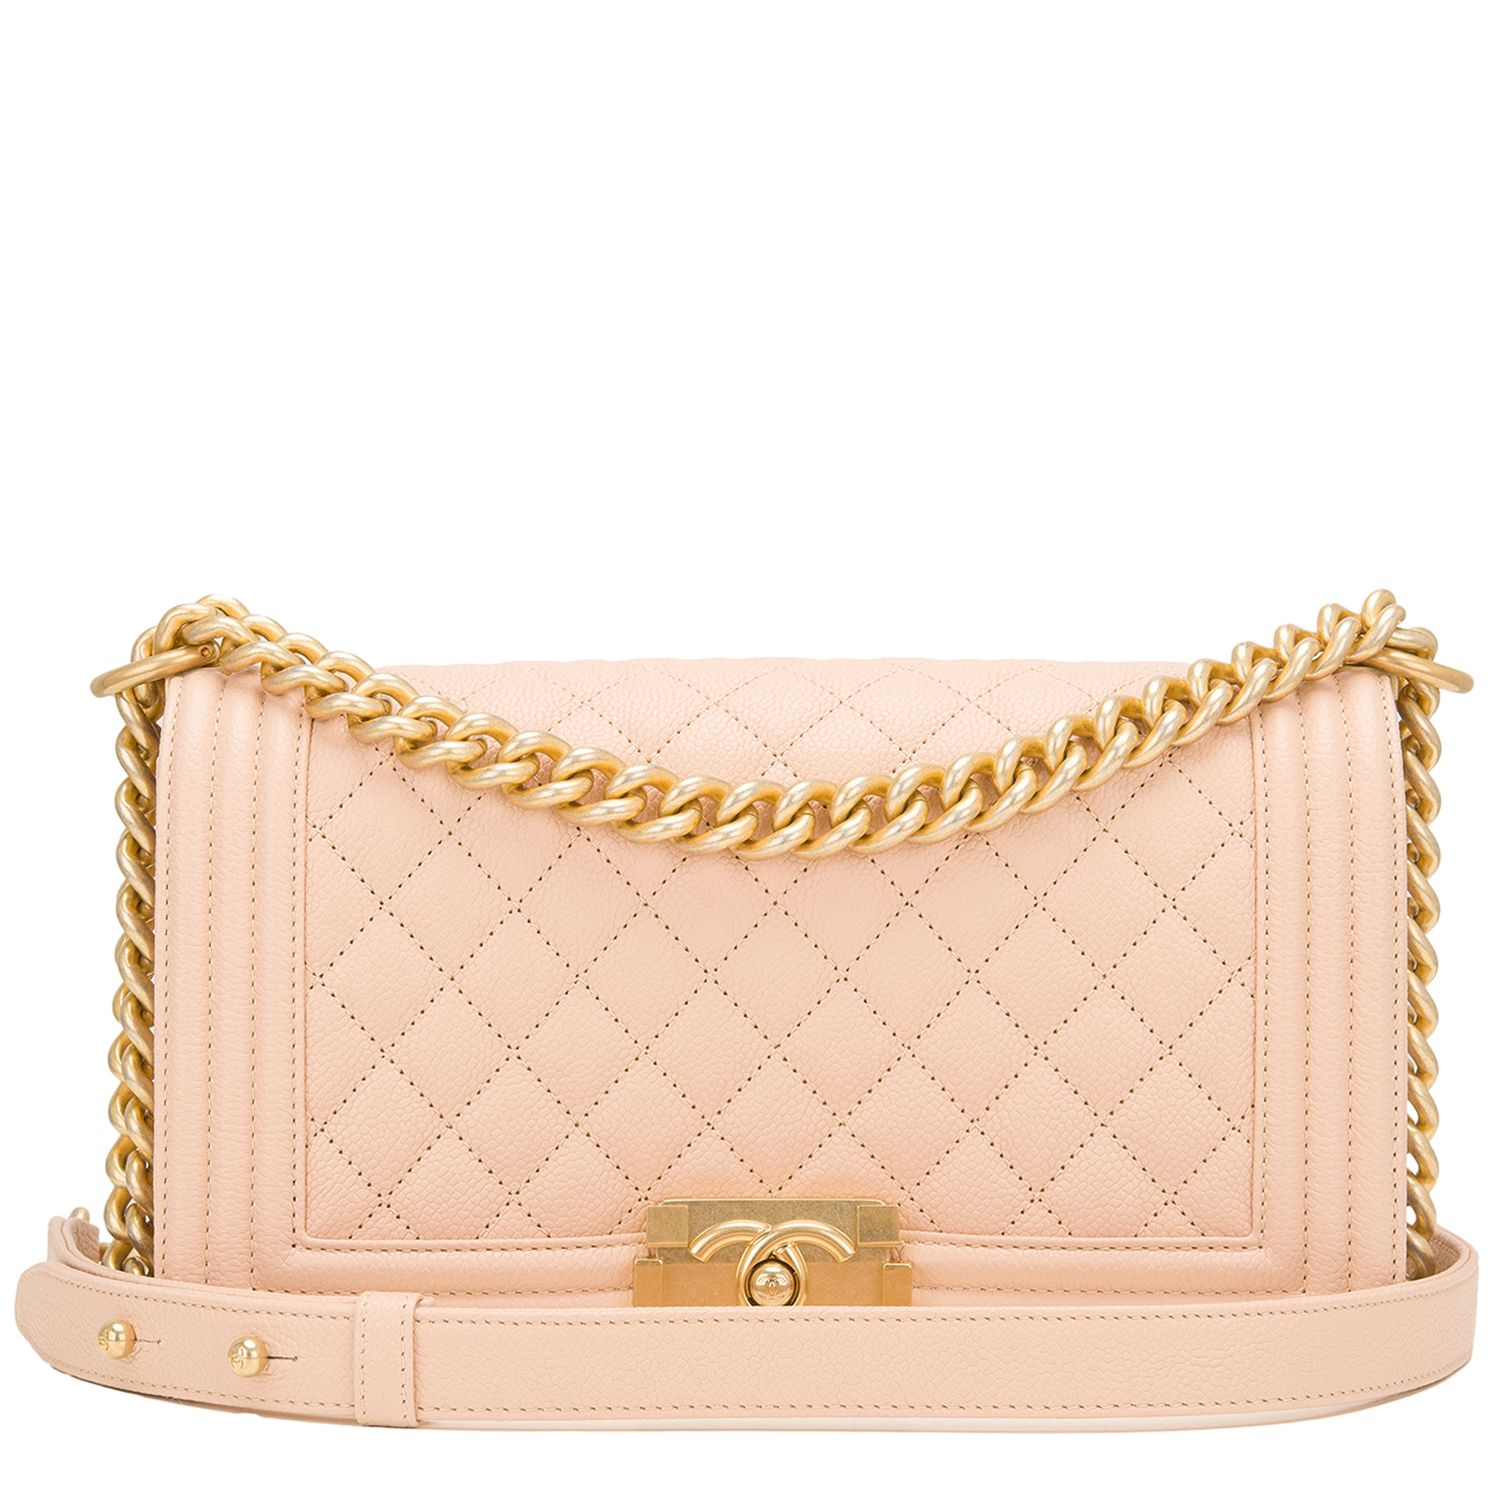 d09d7a76f50d Chanel Light Beige Quilted Caviar Medium Boy #Bag | Handbags to Die ...